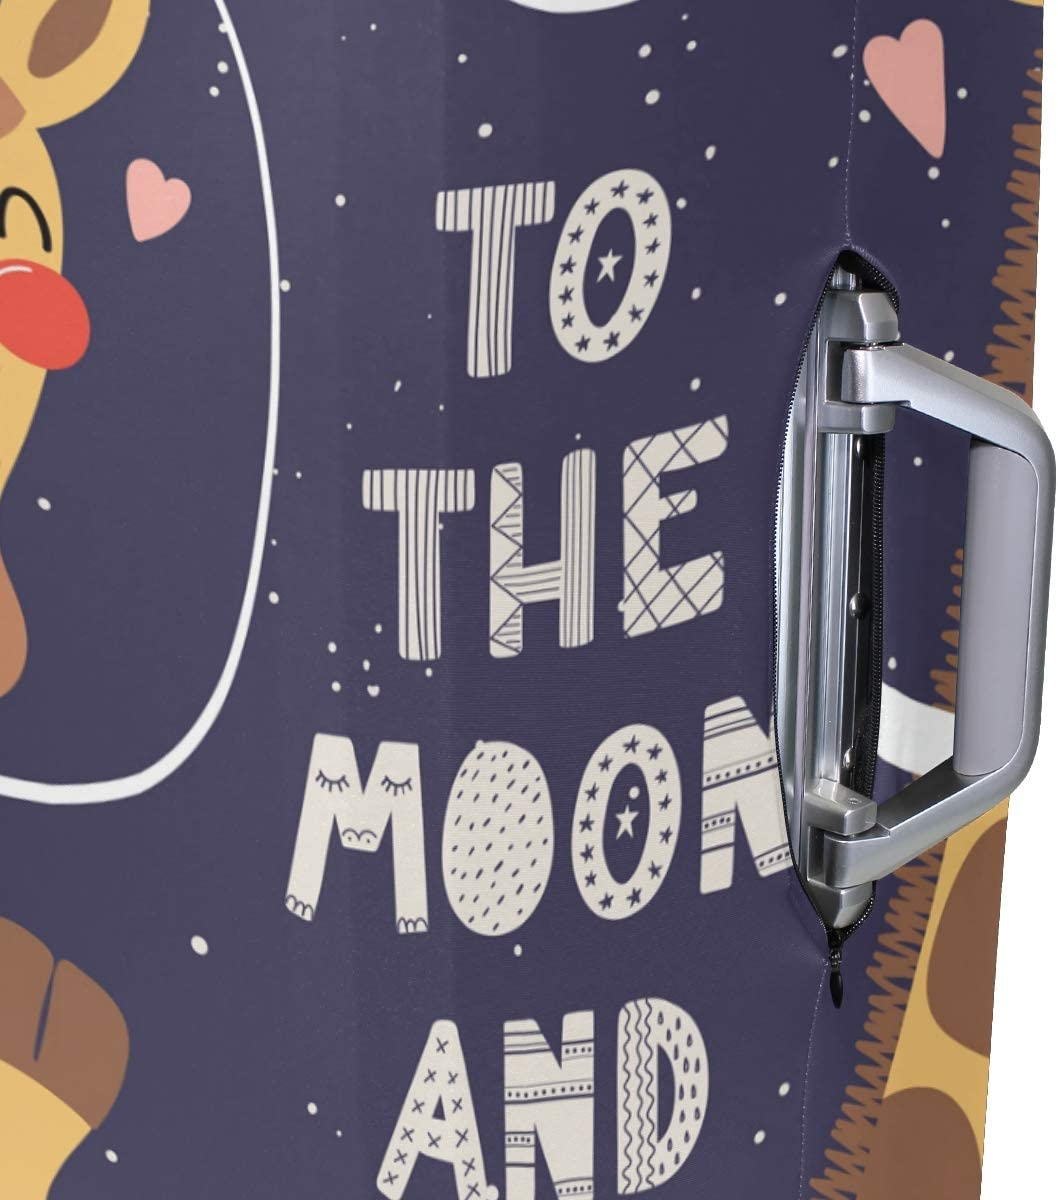 FOLPPLY Funny Deer To The Moon And Back Luggage Cover Baggage Suitcase Travel Protector Fit for 18-32 Inch